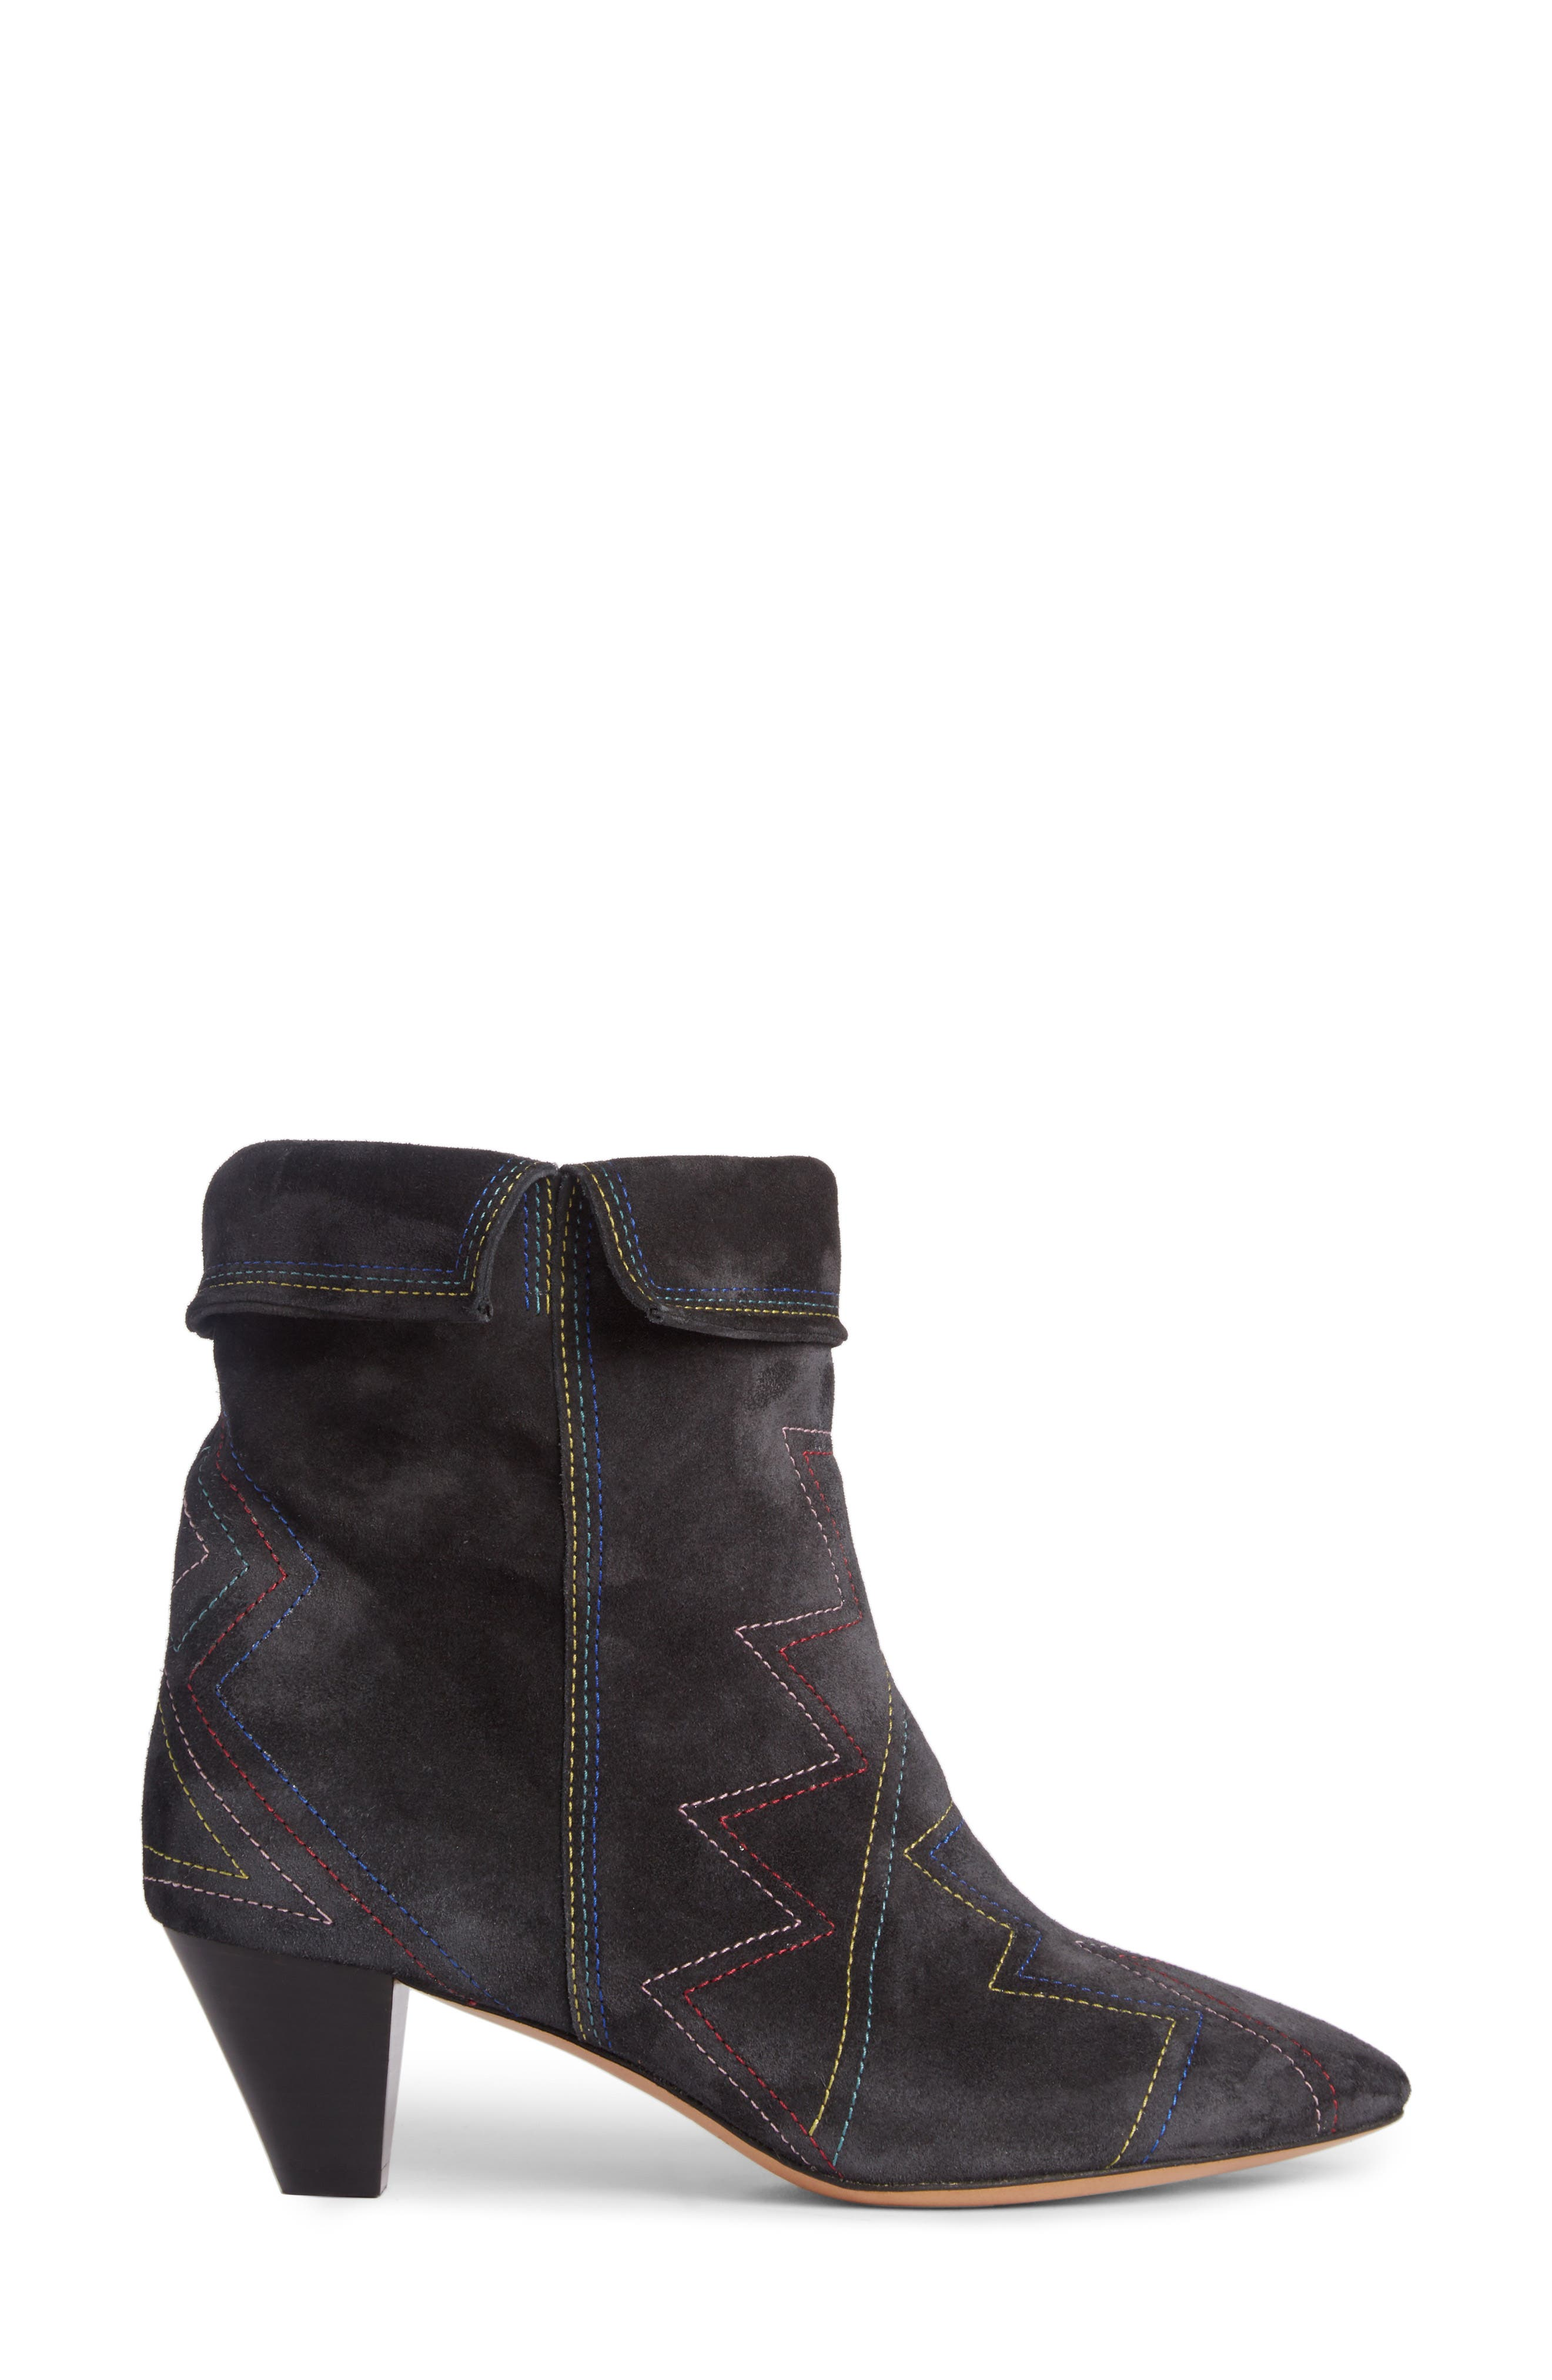 Dyna Topstitched Boot,                             Alternate thumbnail 3, color,                             003